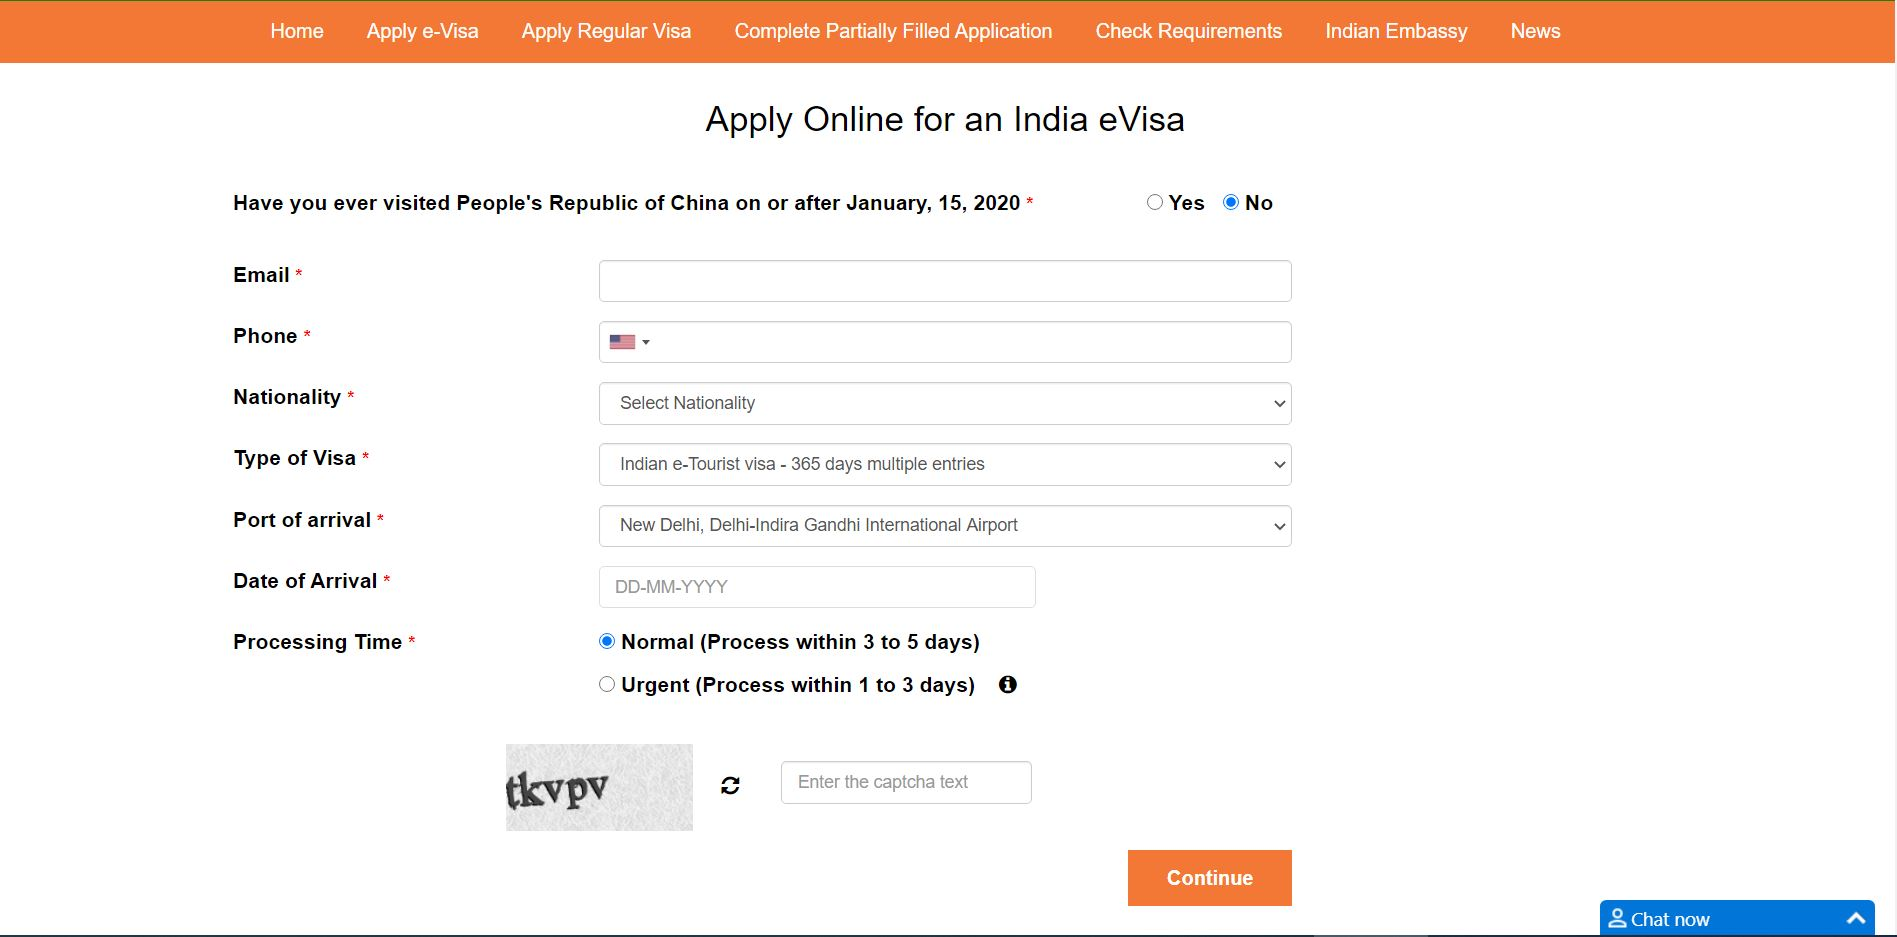 apply online for an India evisa